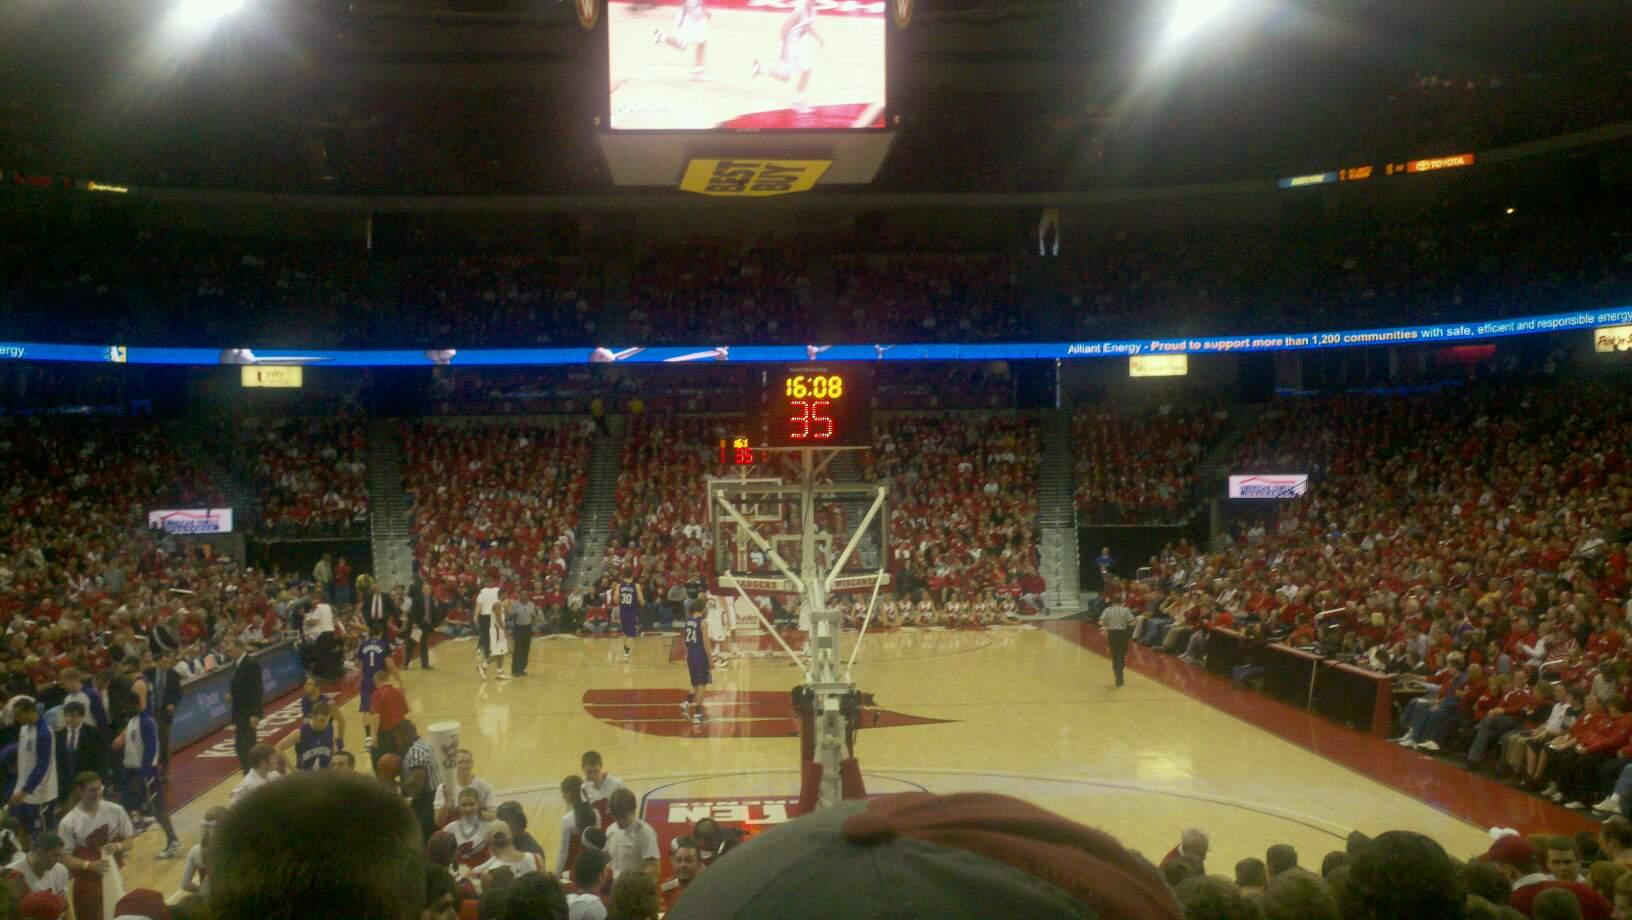 Kohl Center Section 115 Row B Seat 11